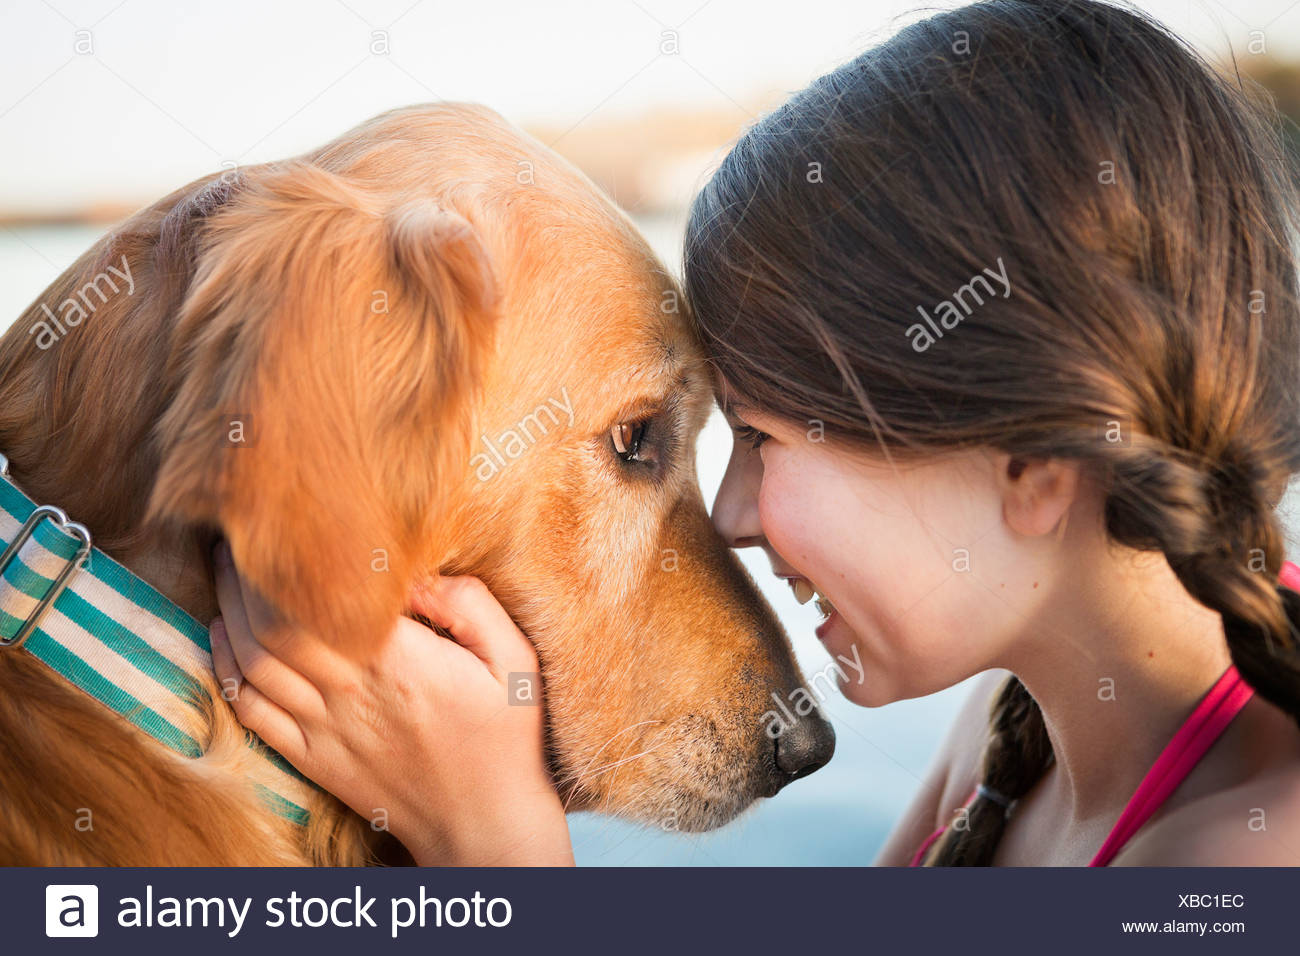 A young girl and a golden retriever dog nose to nose. - Stock Image